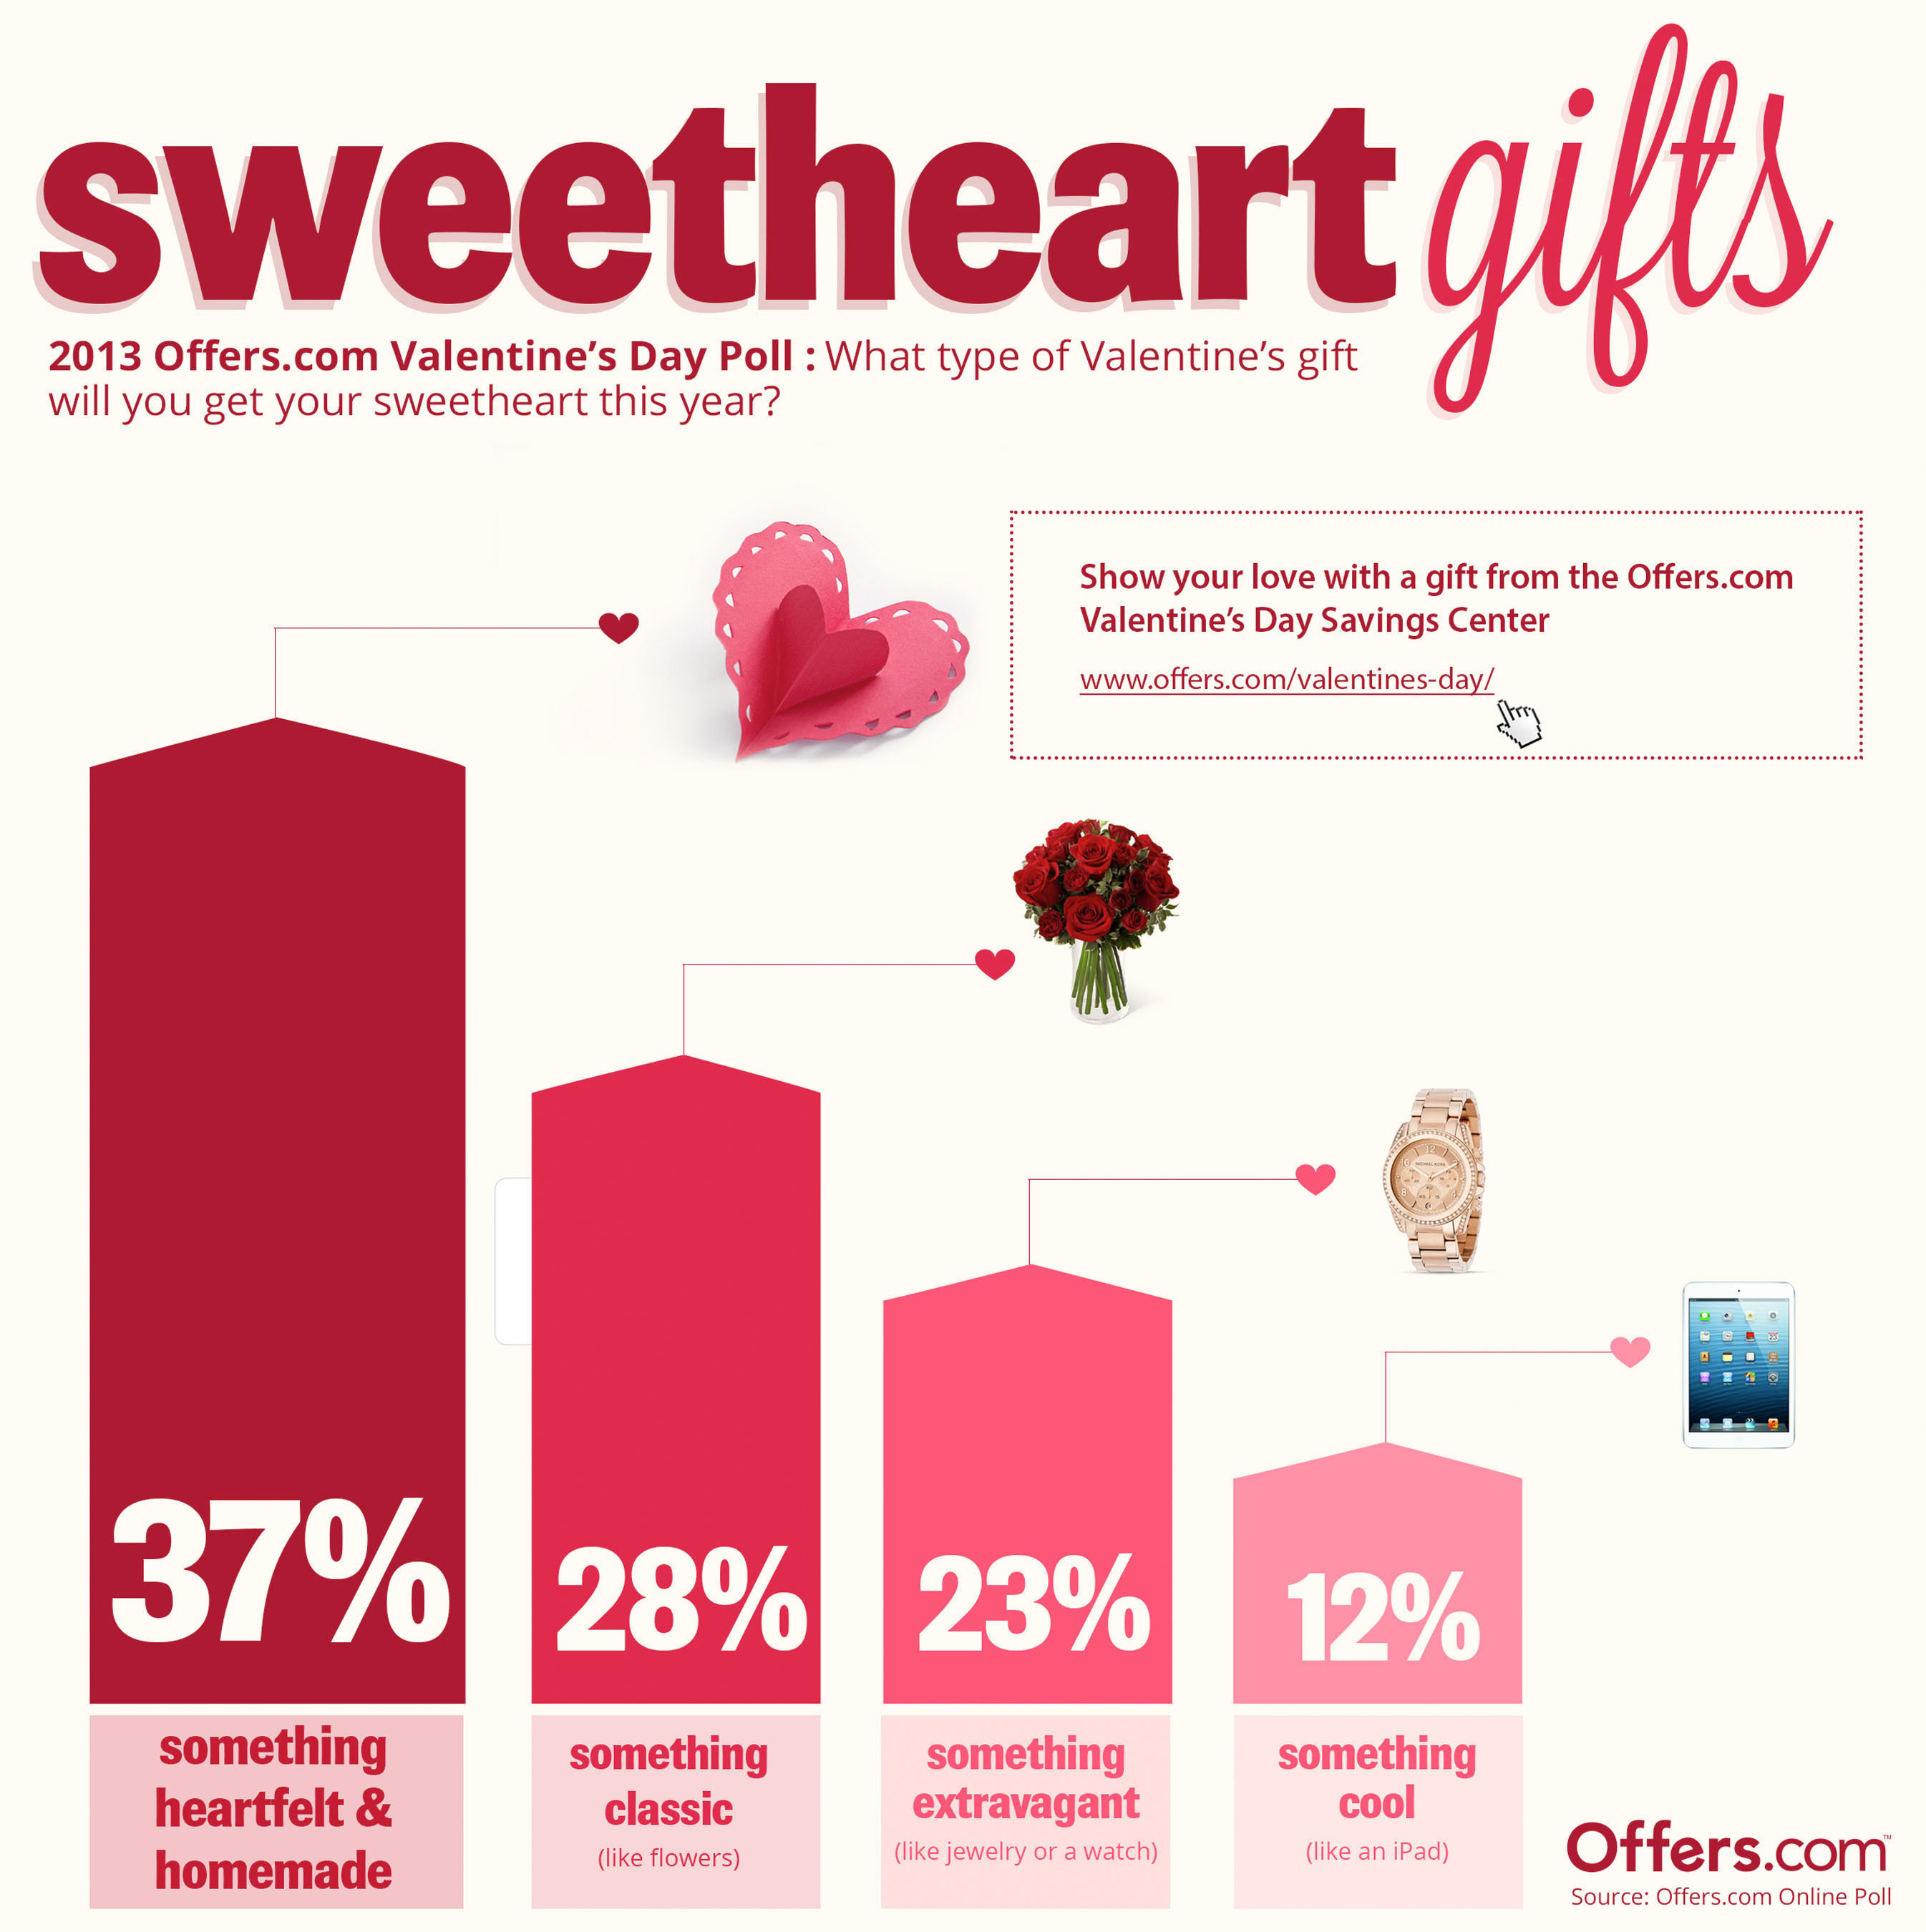 Offers.com Poll Reveals Top 4 Gift Ideas for Valentine's Day